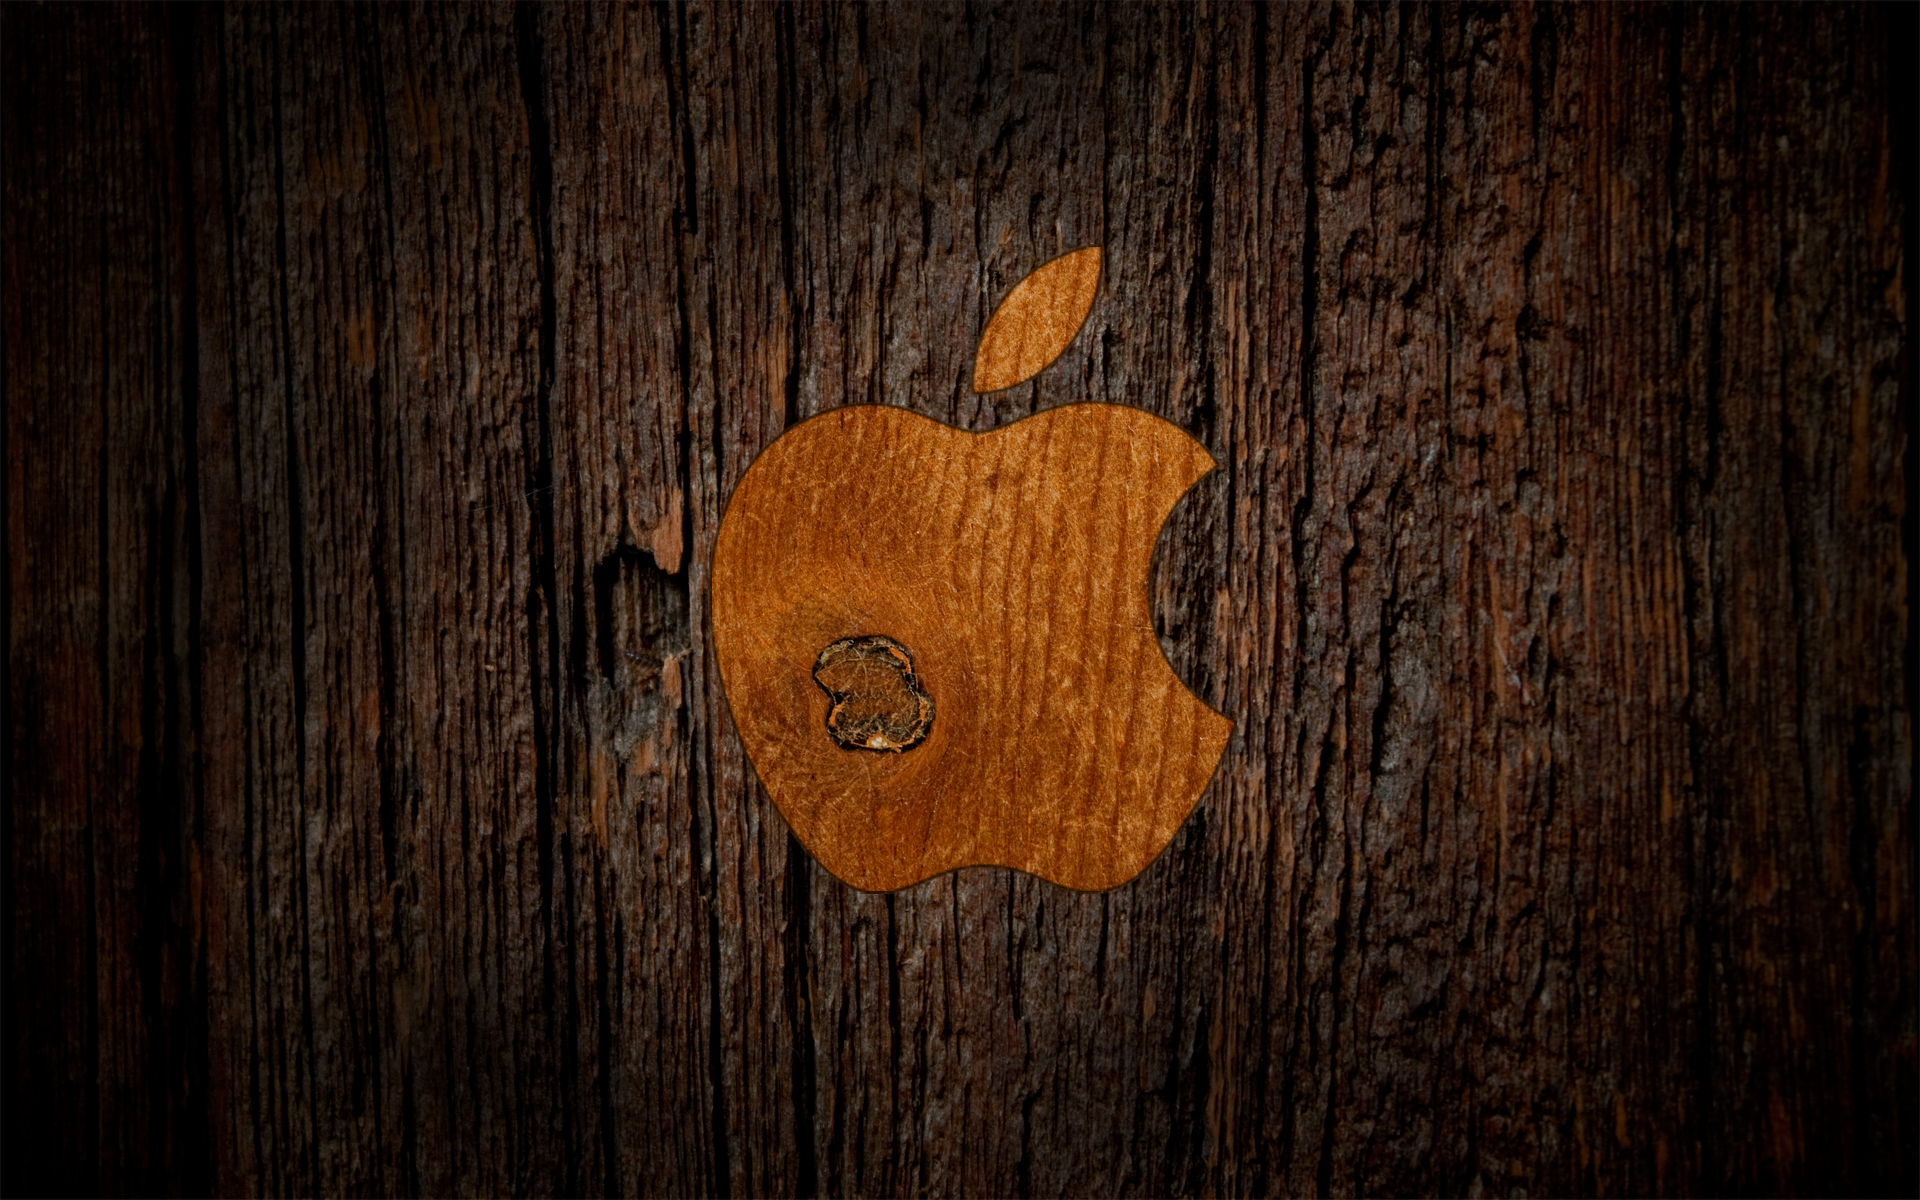 Wooden Apple by CureBoy